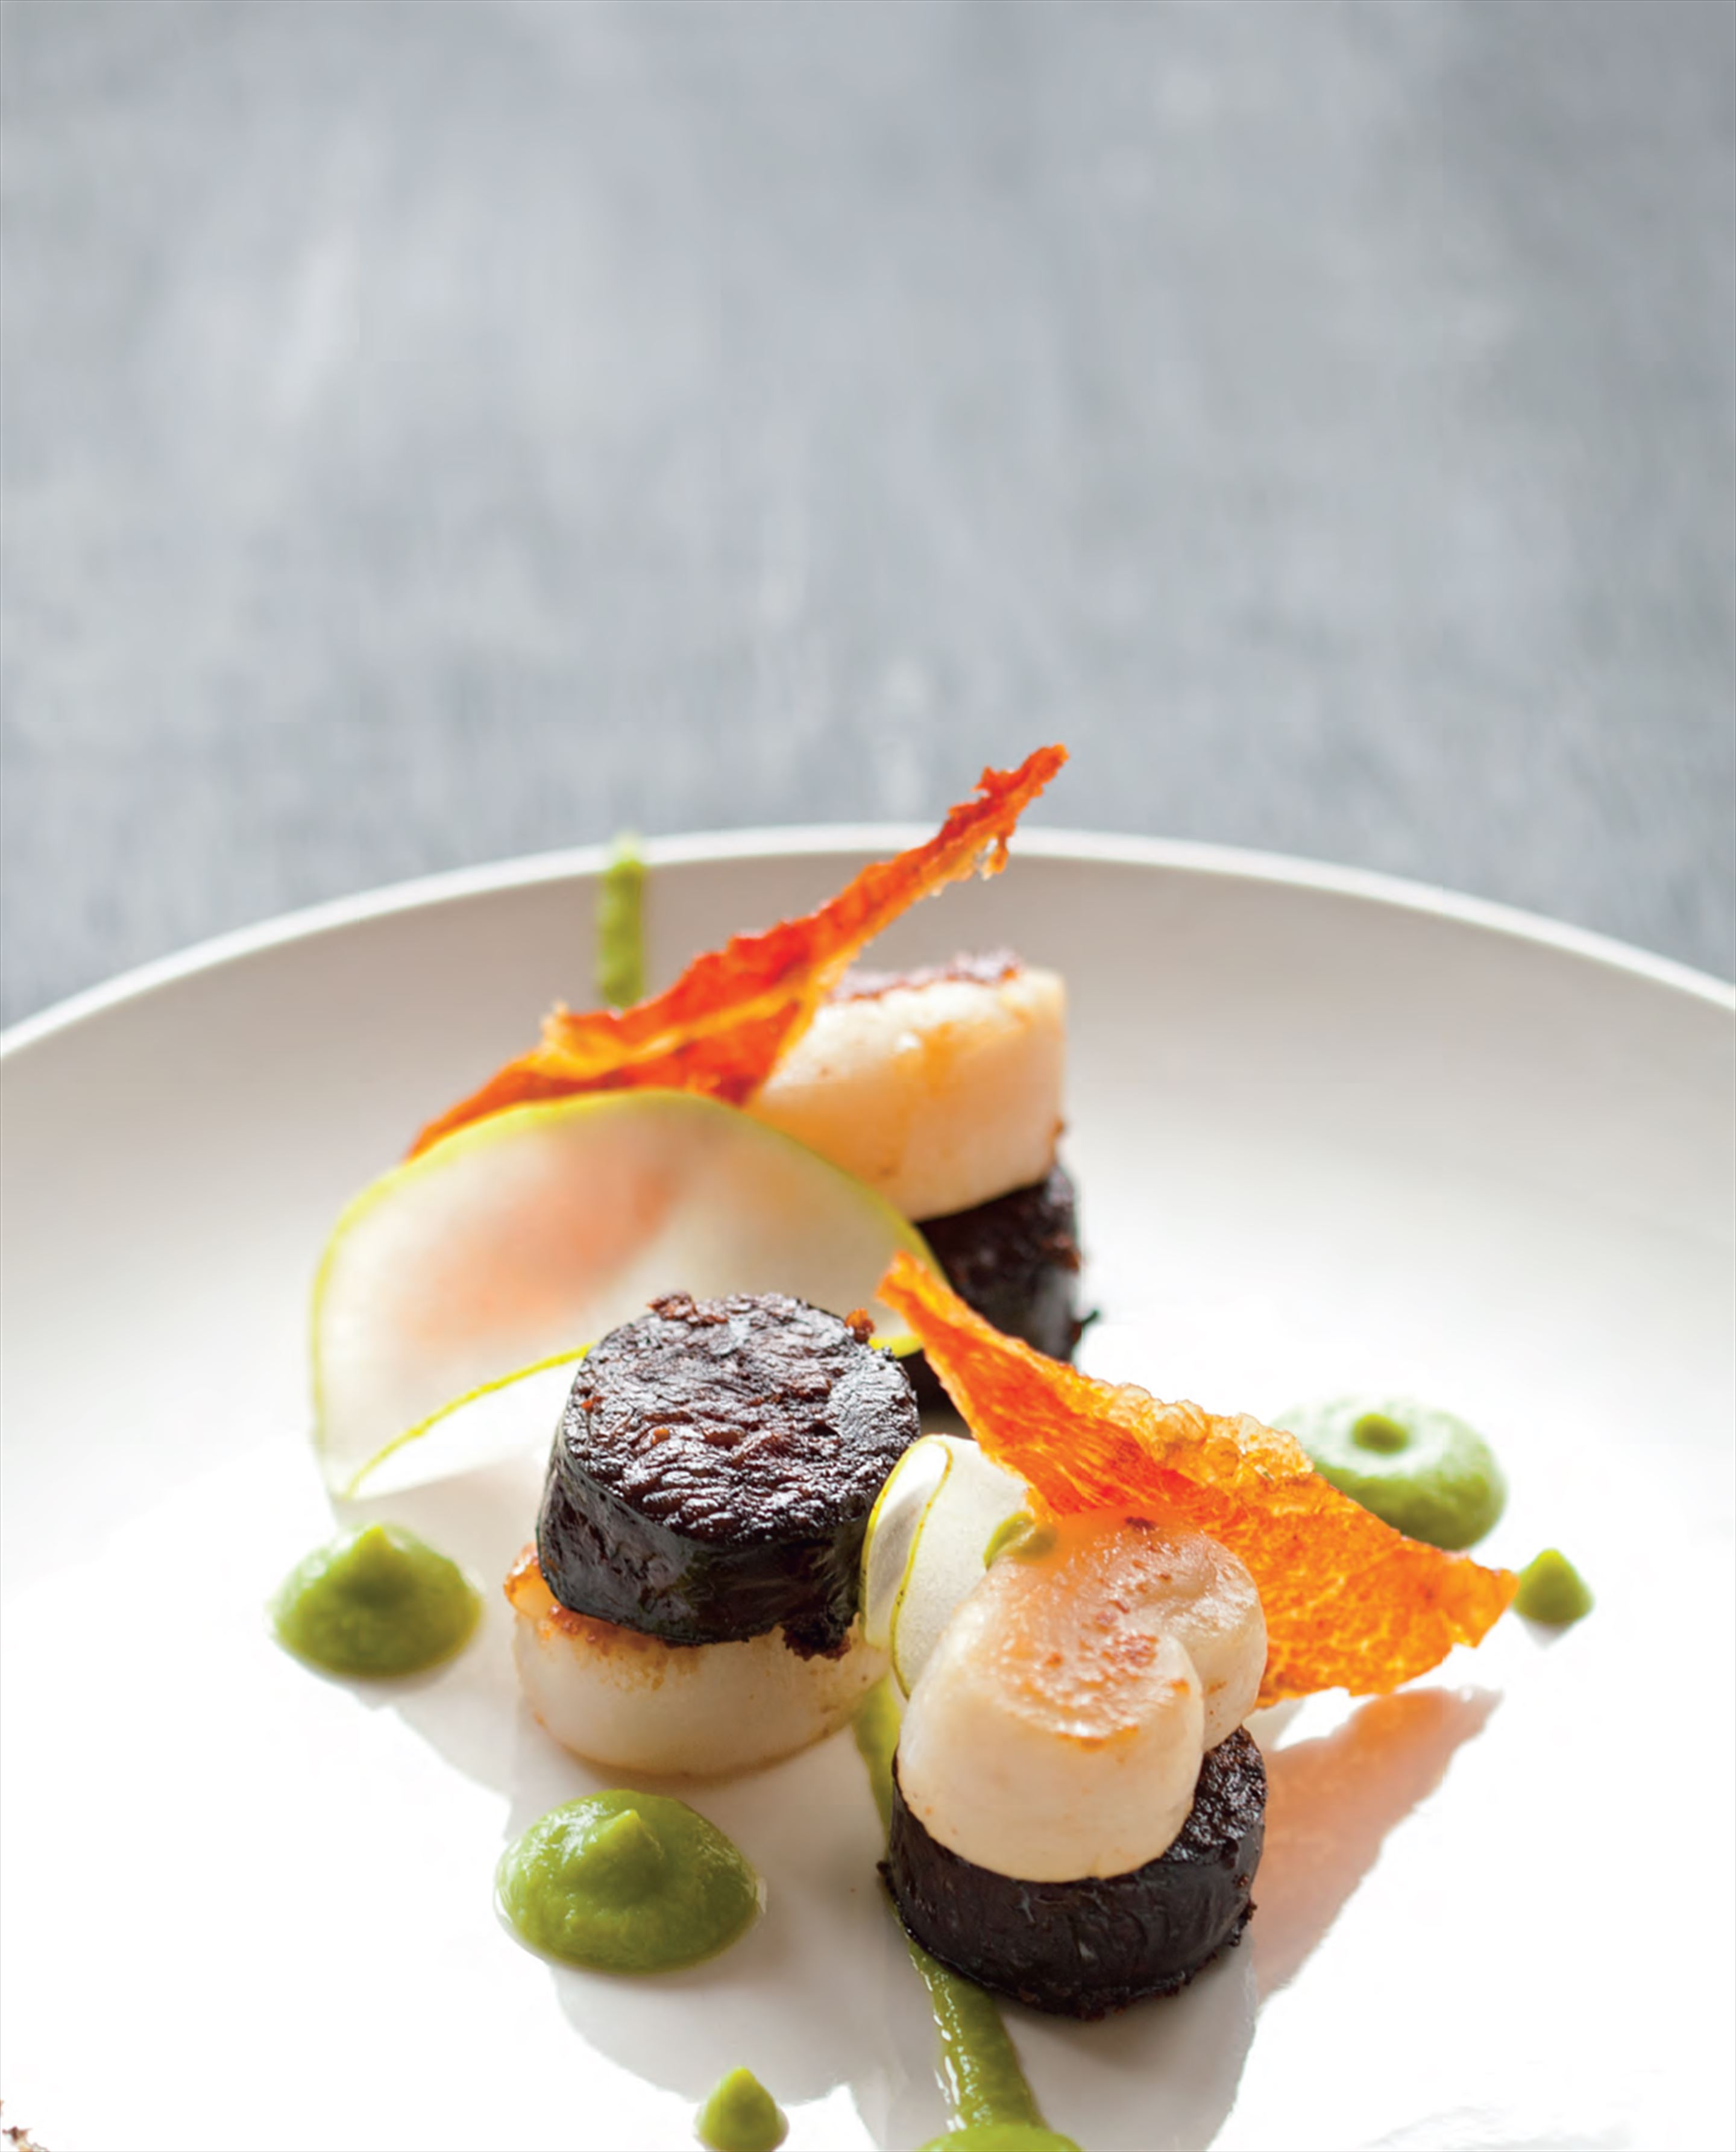 Seared scallops and black pudding with pea purée